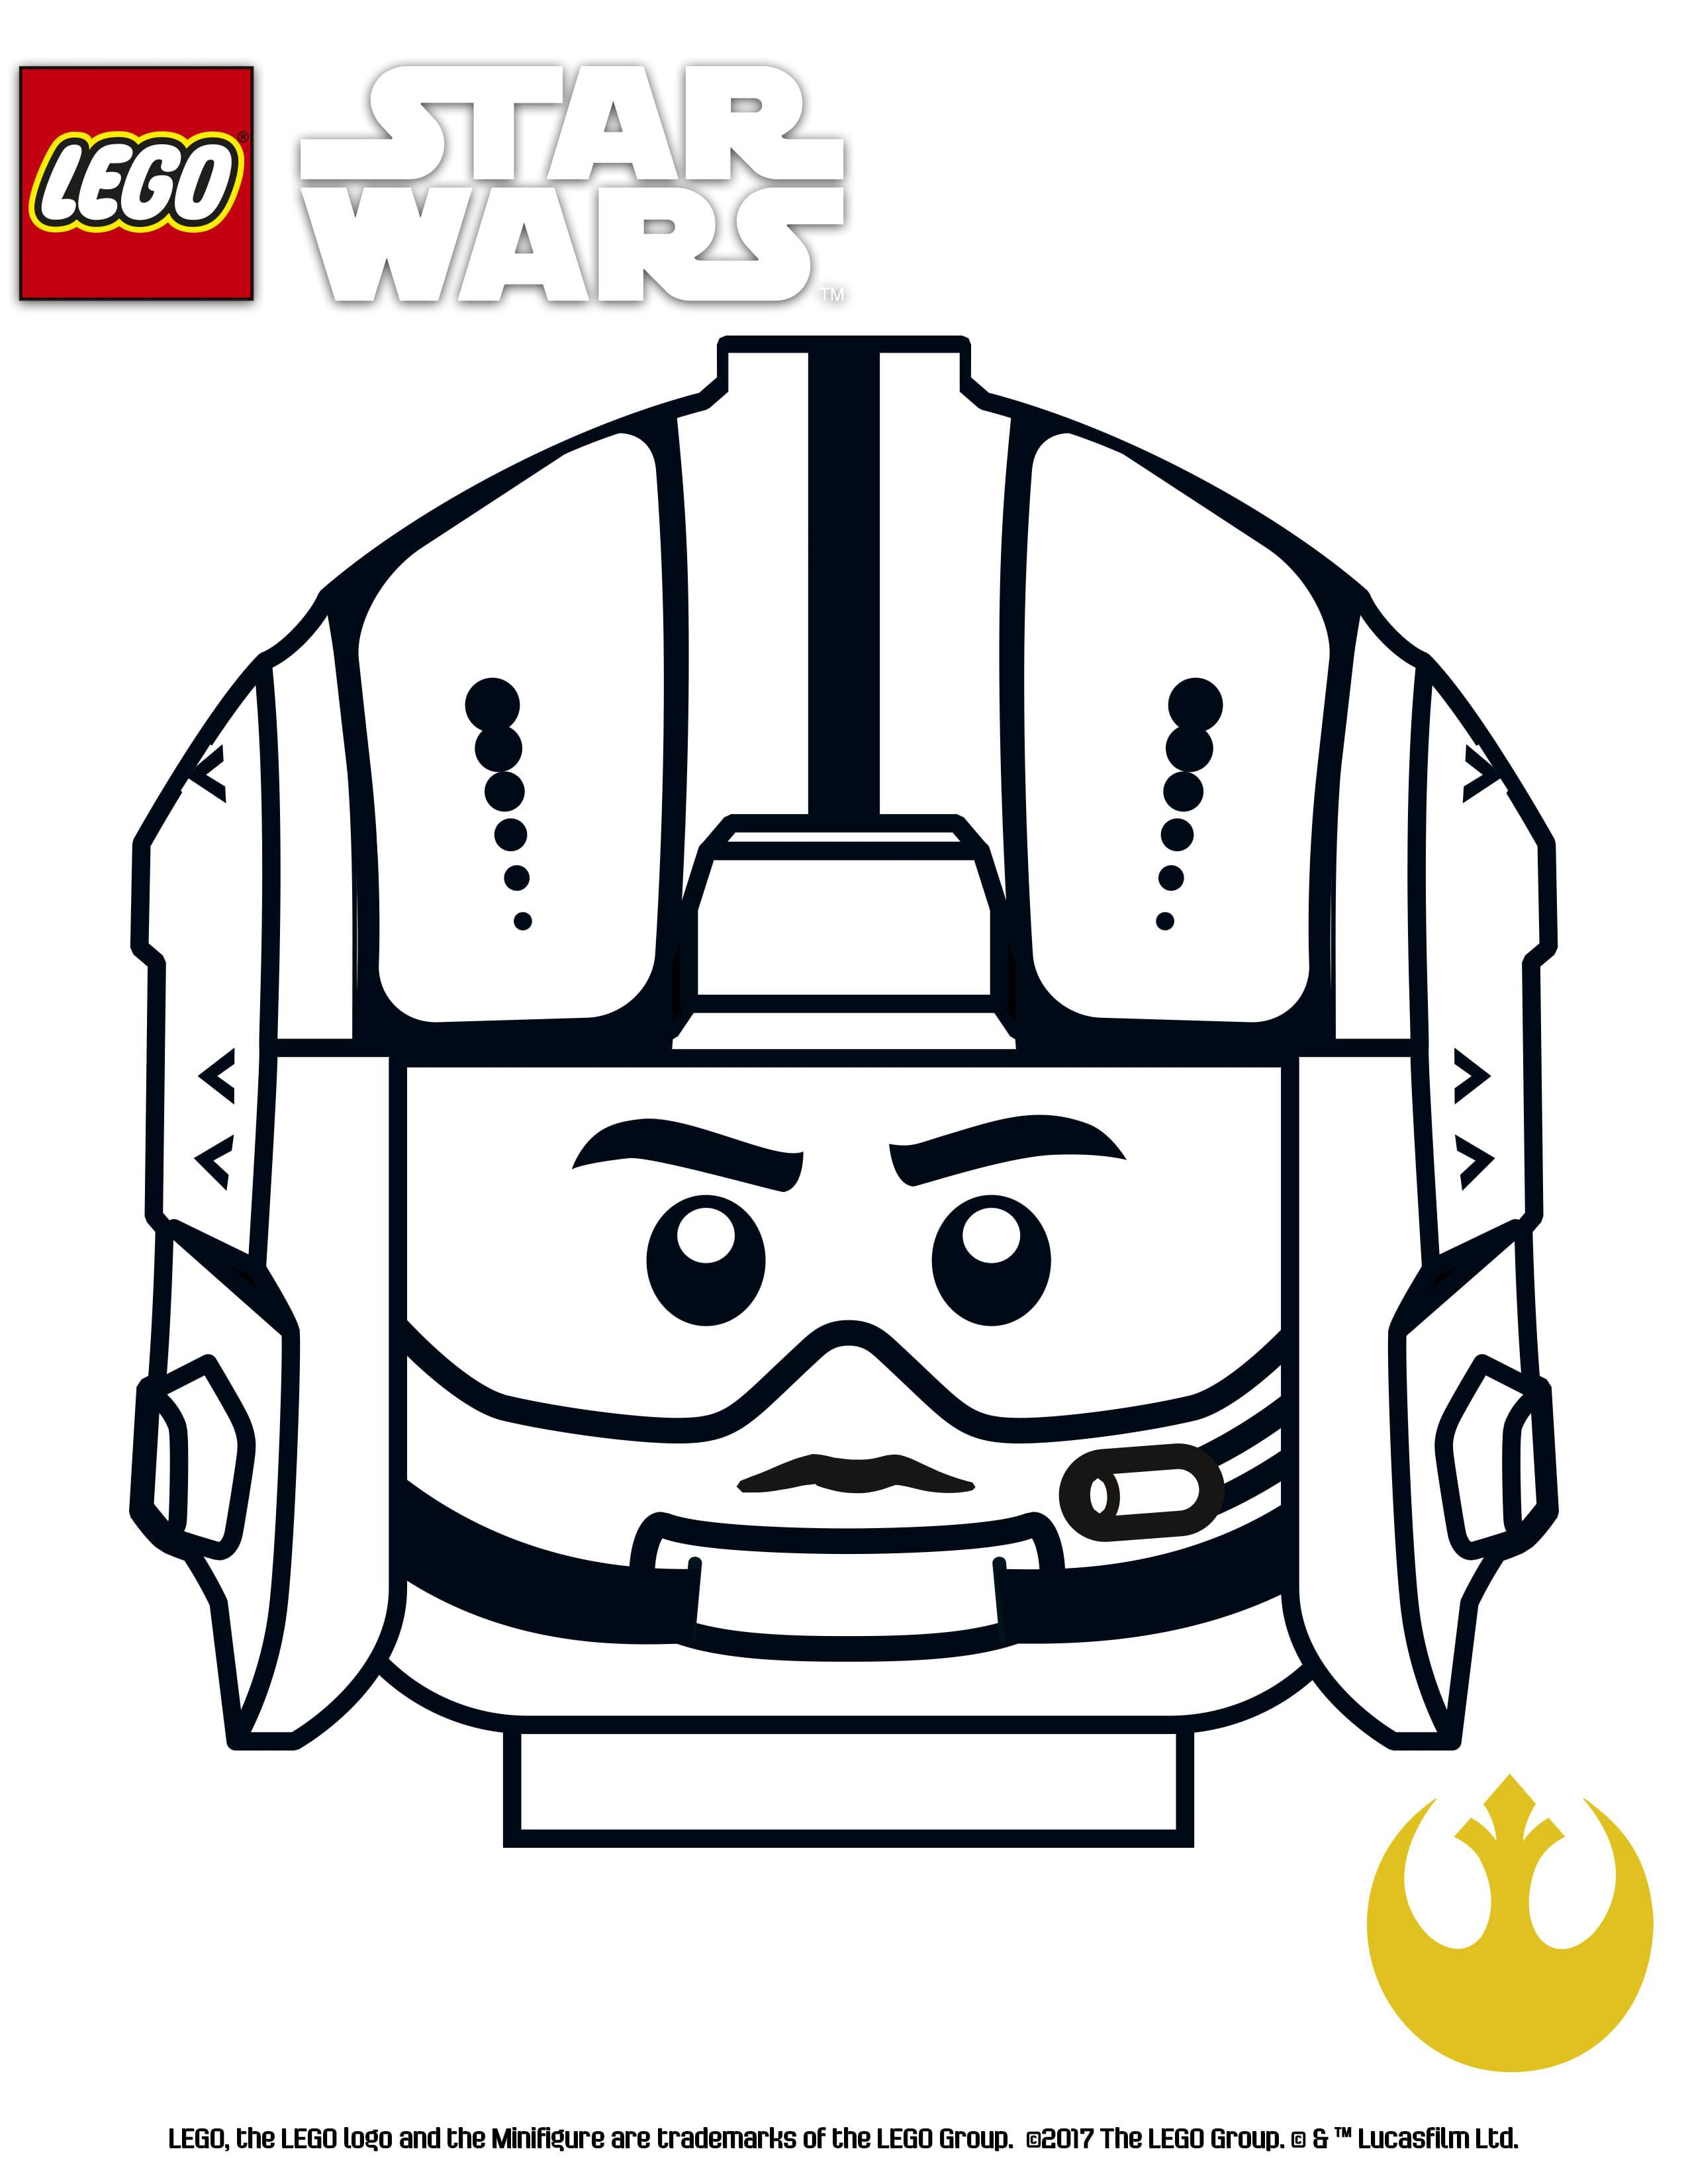 Lego Star Wars Coloring Pages Gold Suadron Star Wars Coloring Sheet Lego Coloring Pages Lego Star Wars